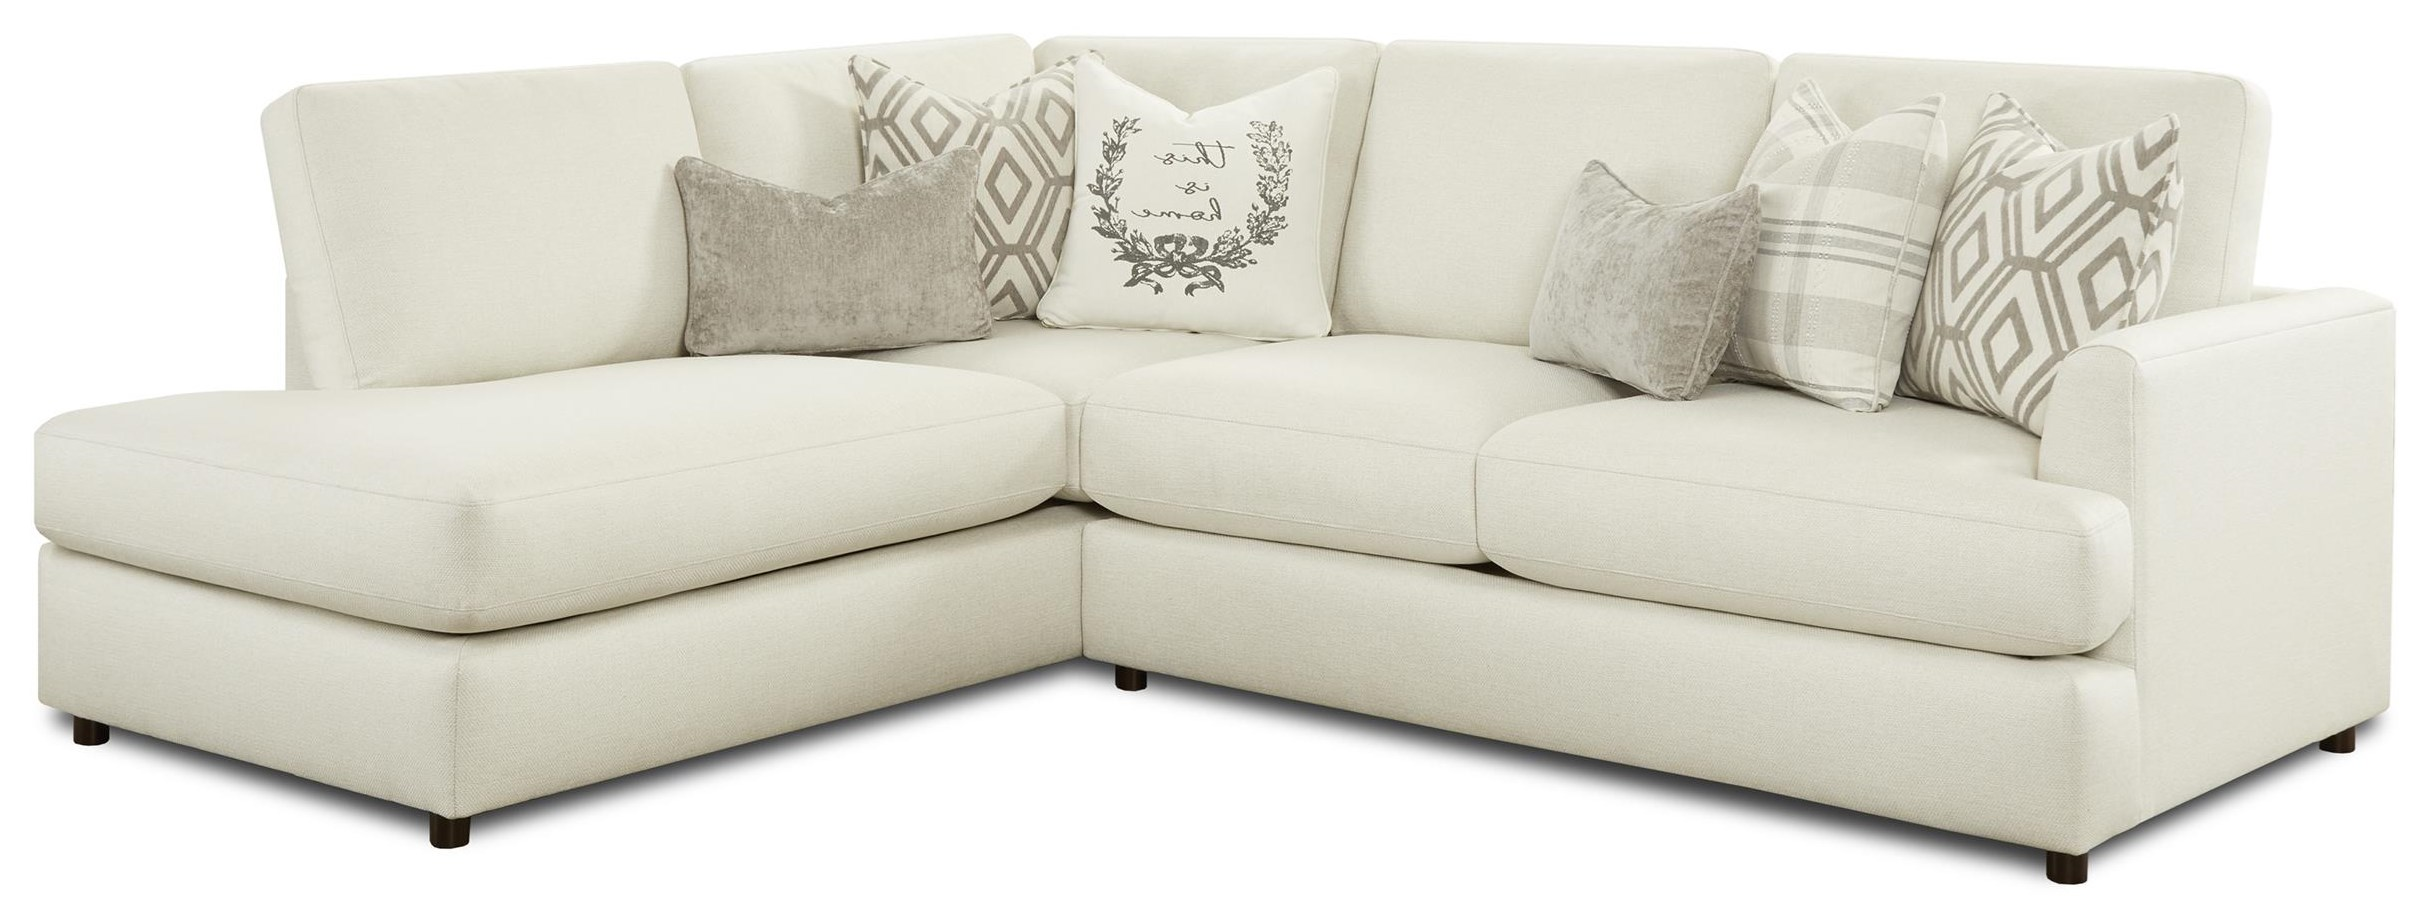 23-00 Two Piece Sectional - RAF Sofa LAF Chaise by Kent Home Furnishings at Johnny Janosik